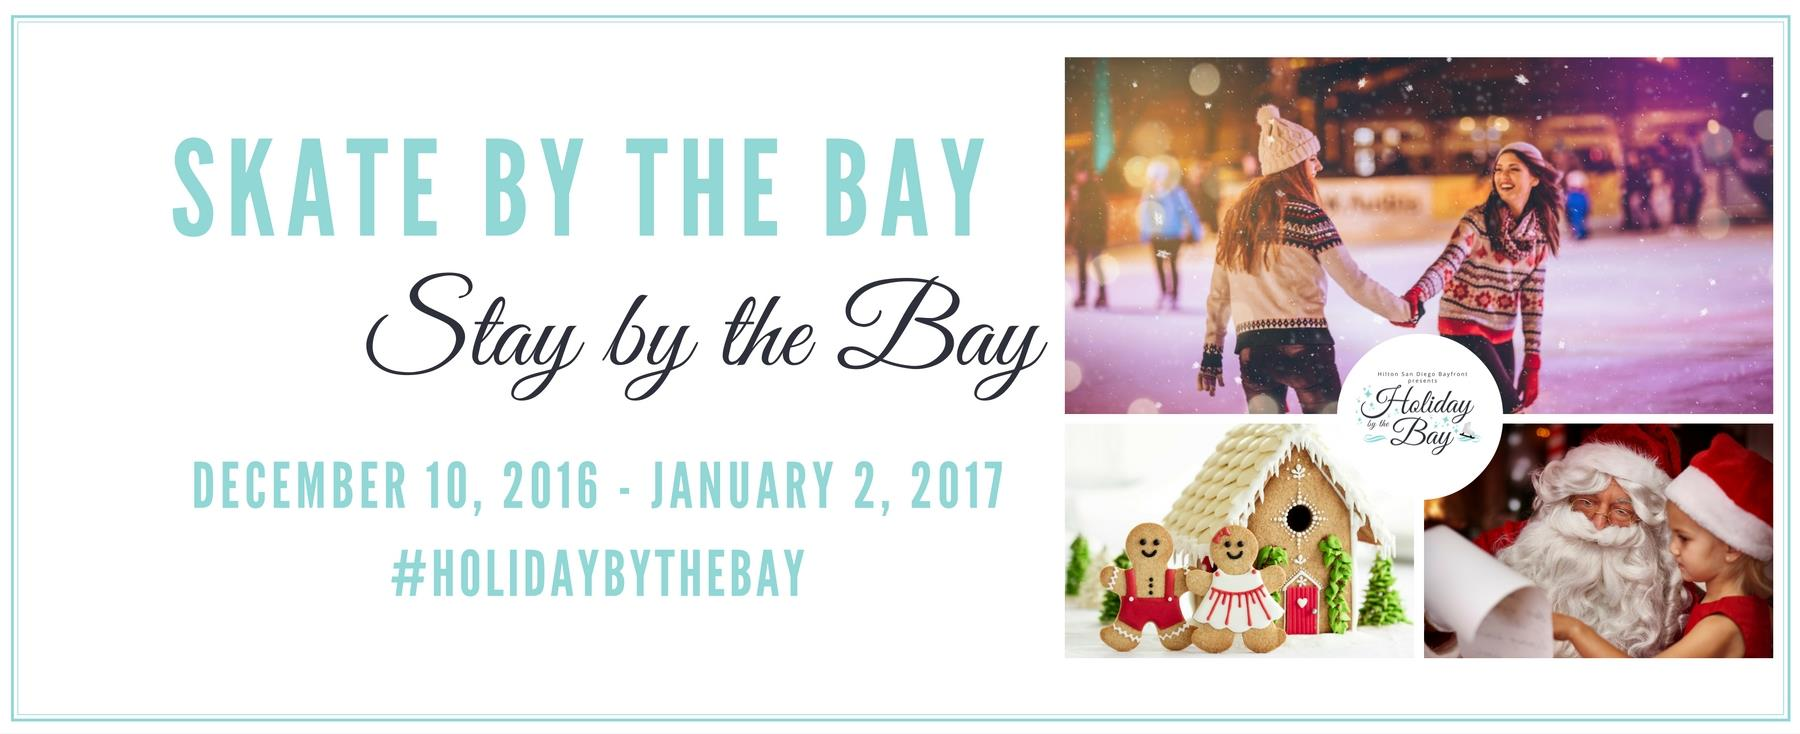 Holiday by The Bay - Skate by the Bay